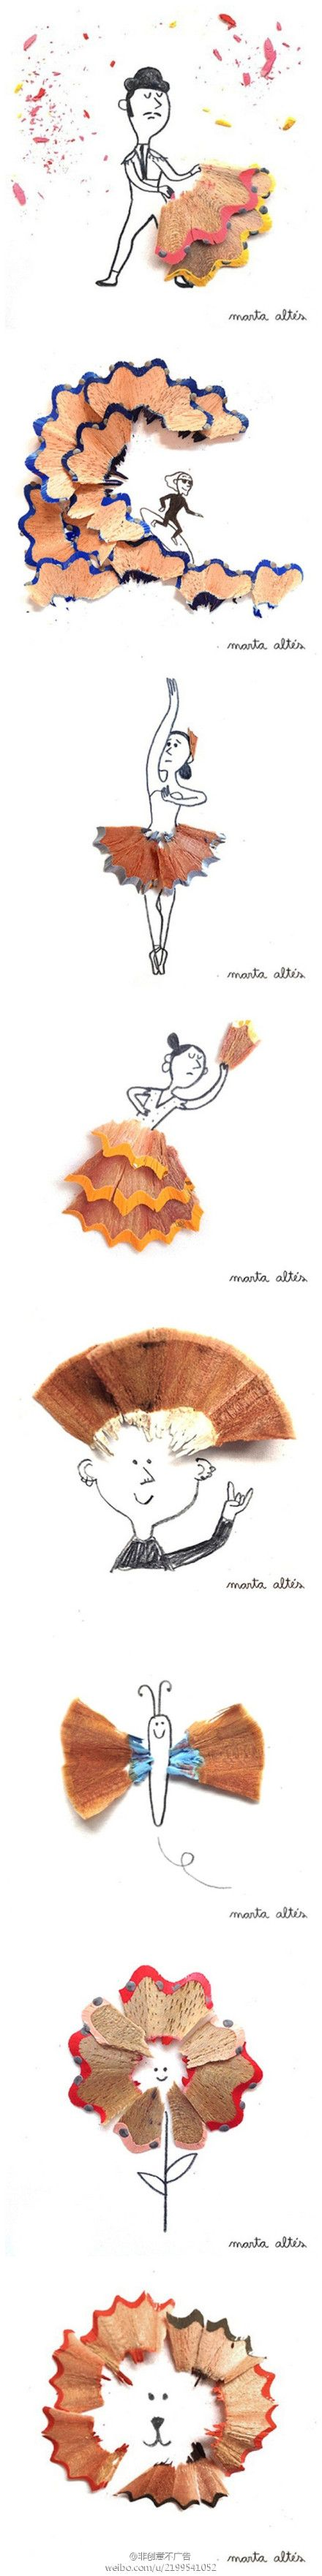 a series of super cute colour pencil shavings illustration by Marta Altés!